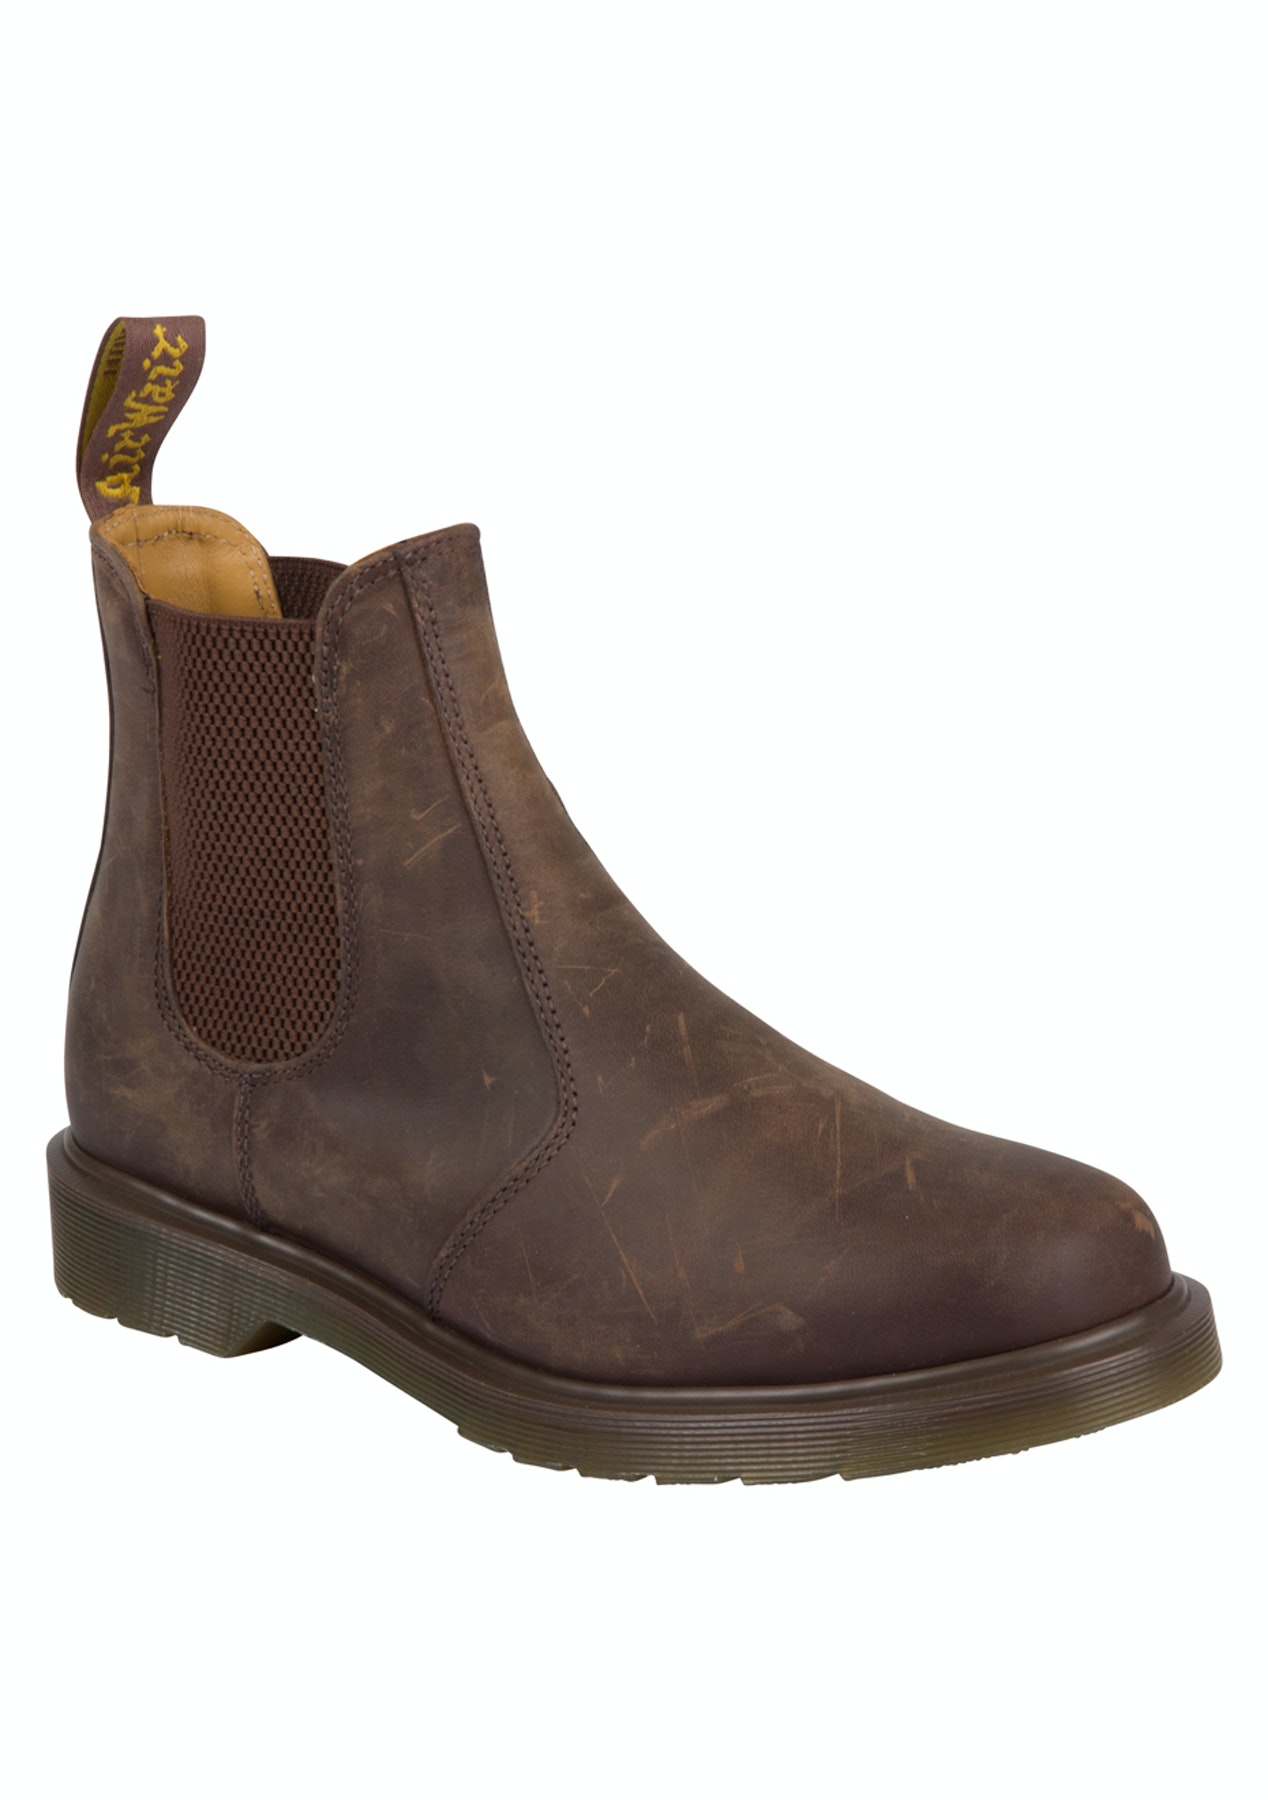 4d72ac5b96a Dr Martens - 2976 Chelsea Boot - Gaucho Crazyhorse Leather - Shoe Sell Out  - Onceit